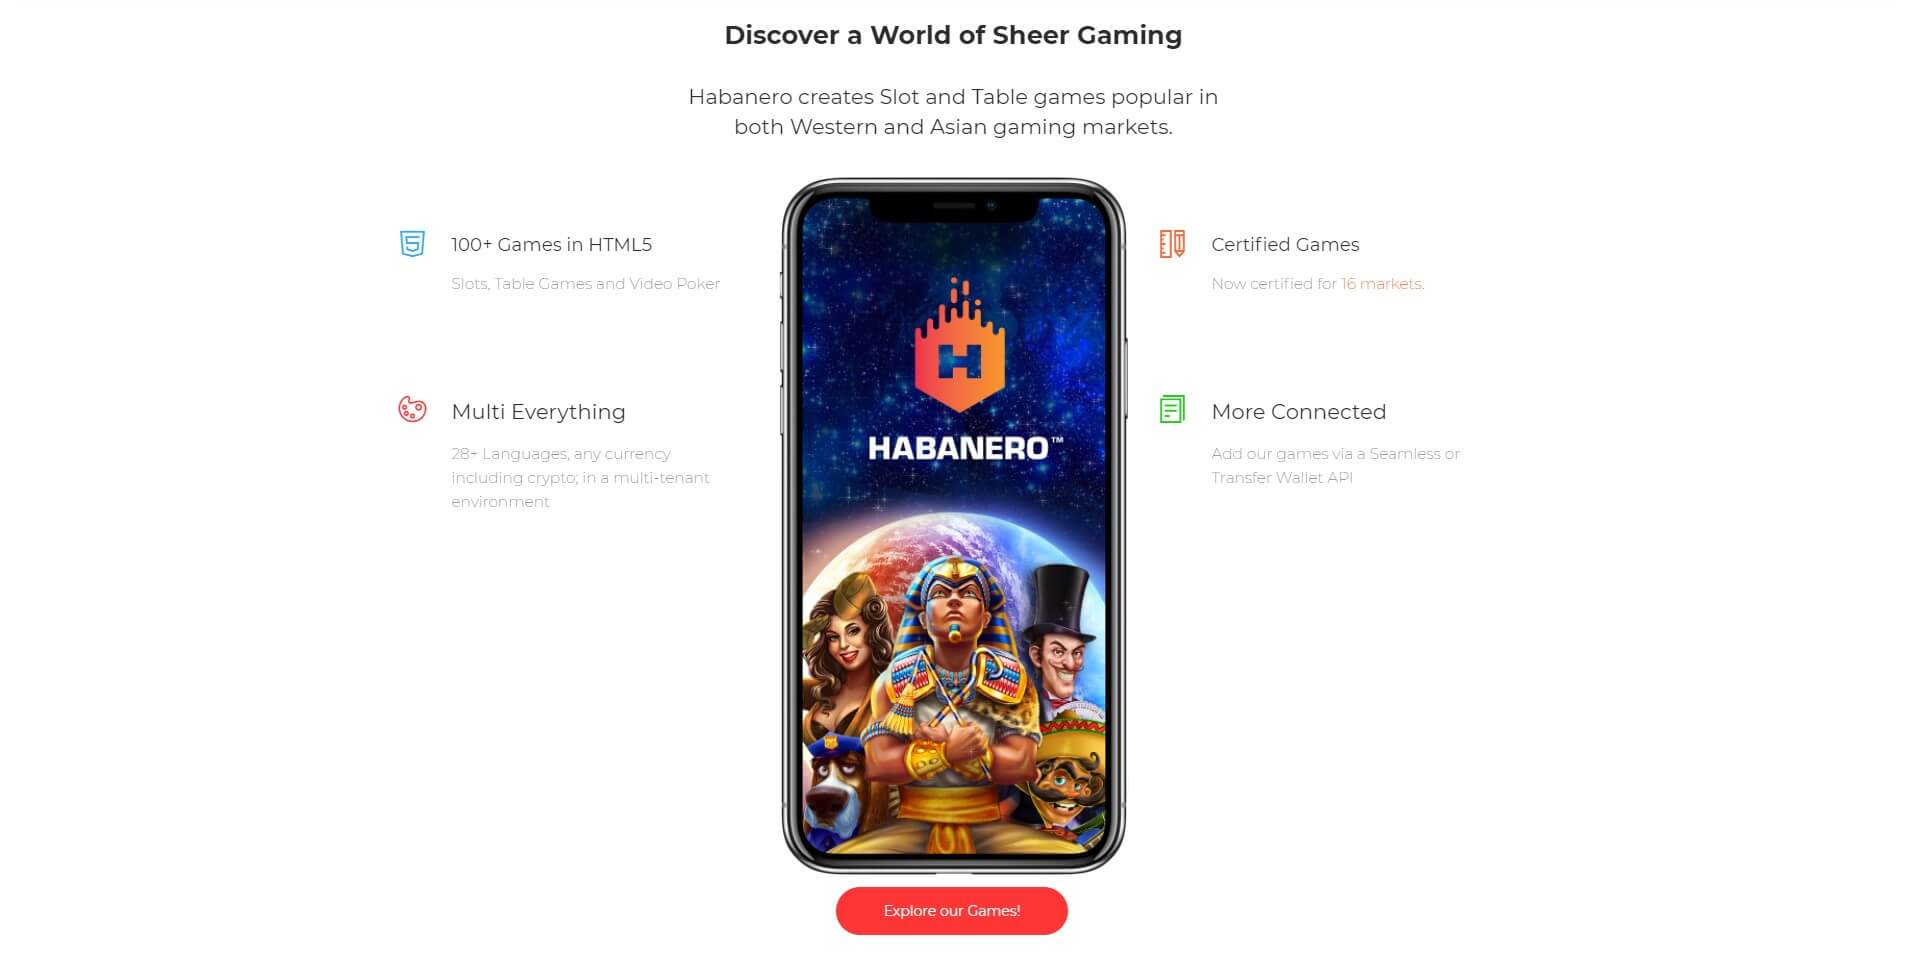 habanero gaming mobile experience